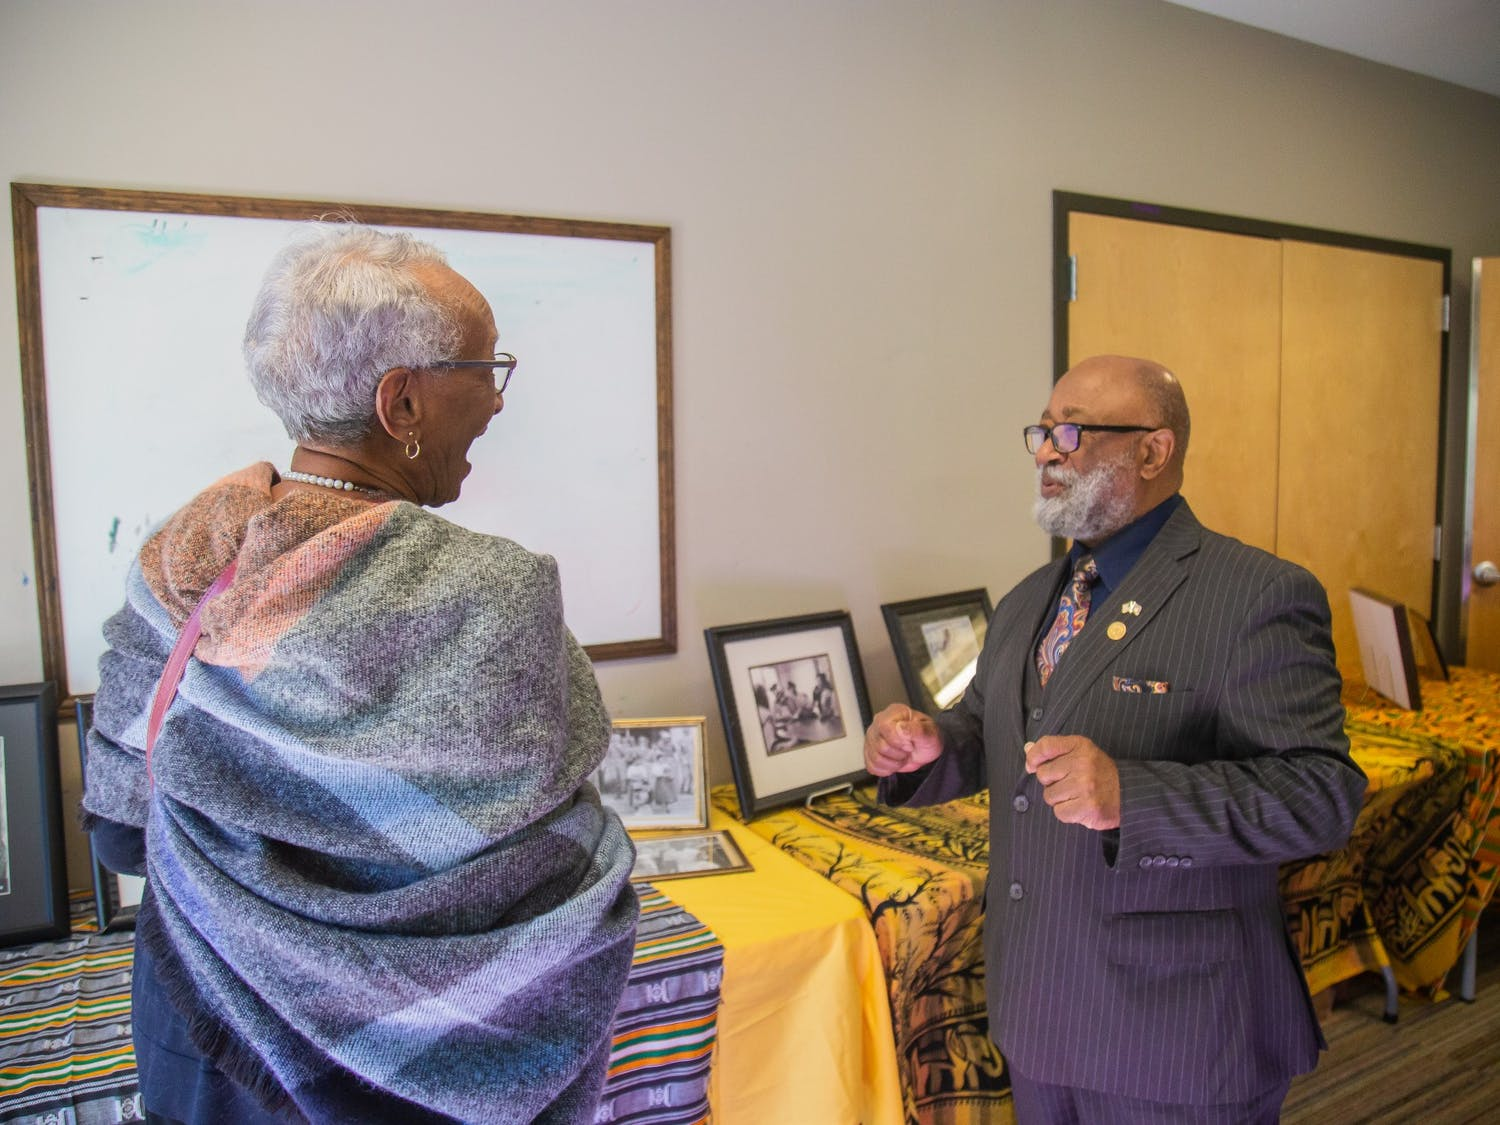 Chapel Hill residents Larry and Karen Reid attend the Sankofa African-American History Museum on Wheels event at the Rogers Road Community Center in Chapel Hill on Sunday, Jan. 19, 2020.